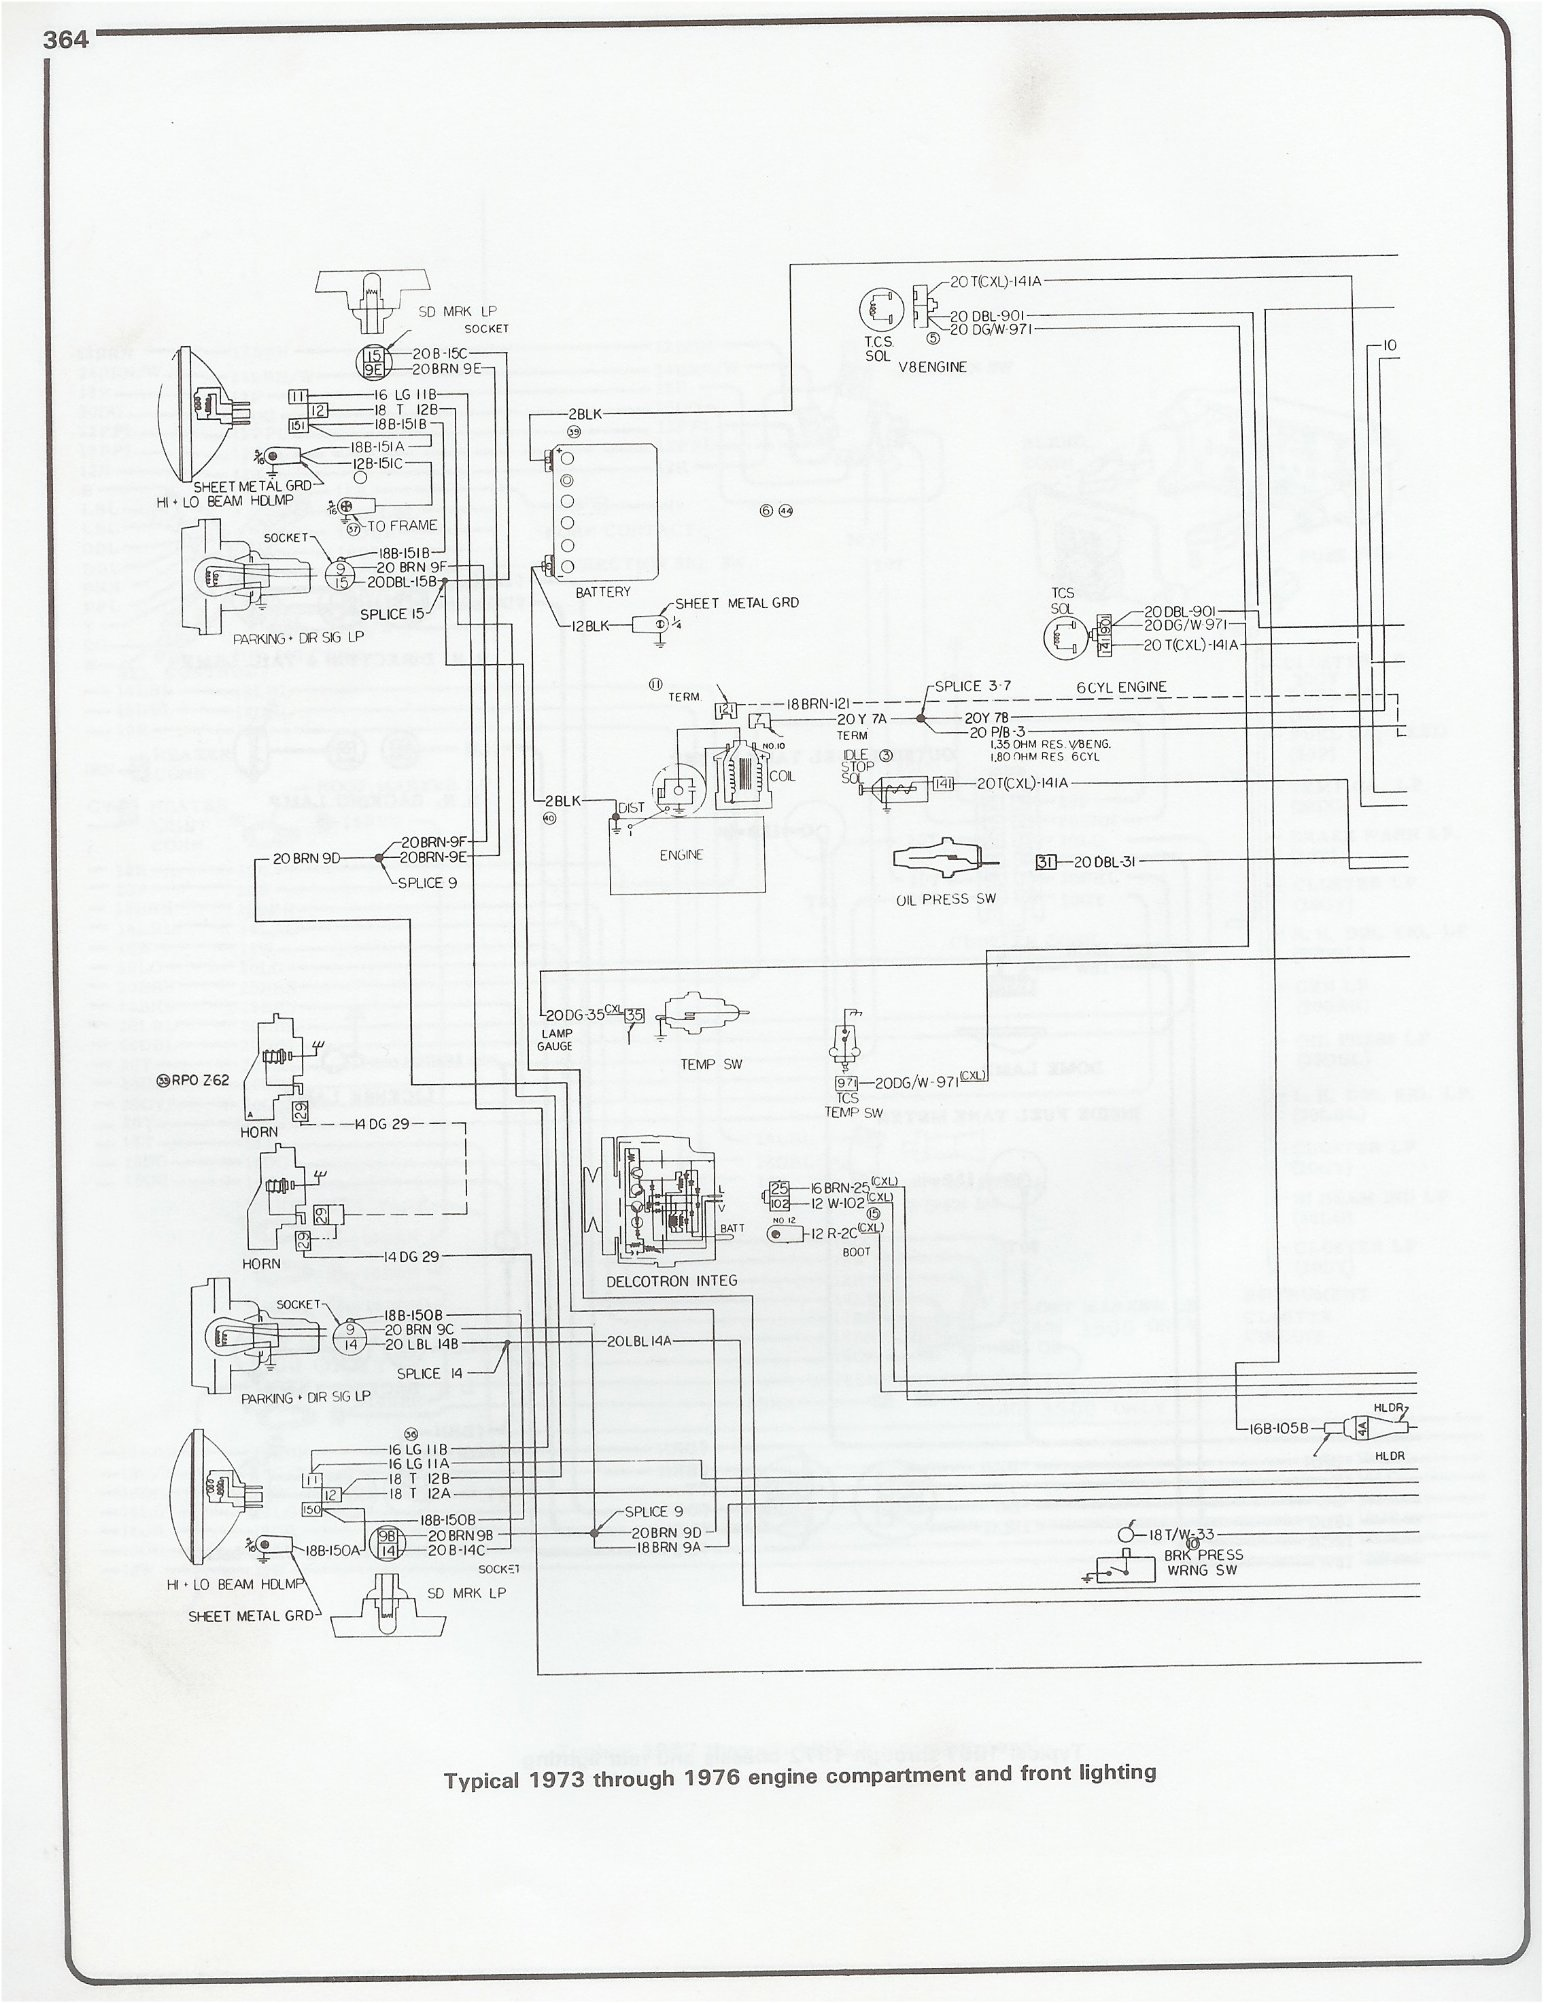 73 76_eng_frt_light complete 73 87 wiring diagrams isuzu box truck wiring diagram at suagrazia.org